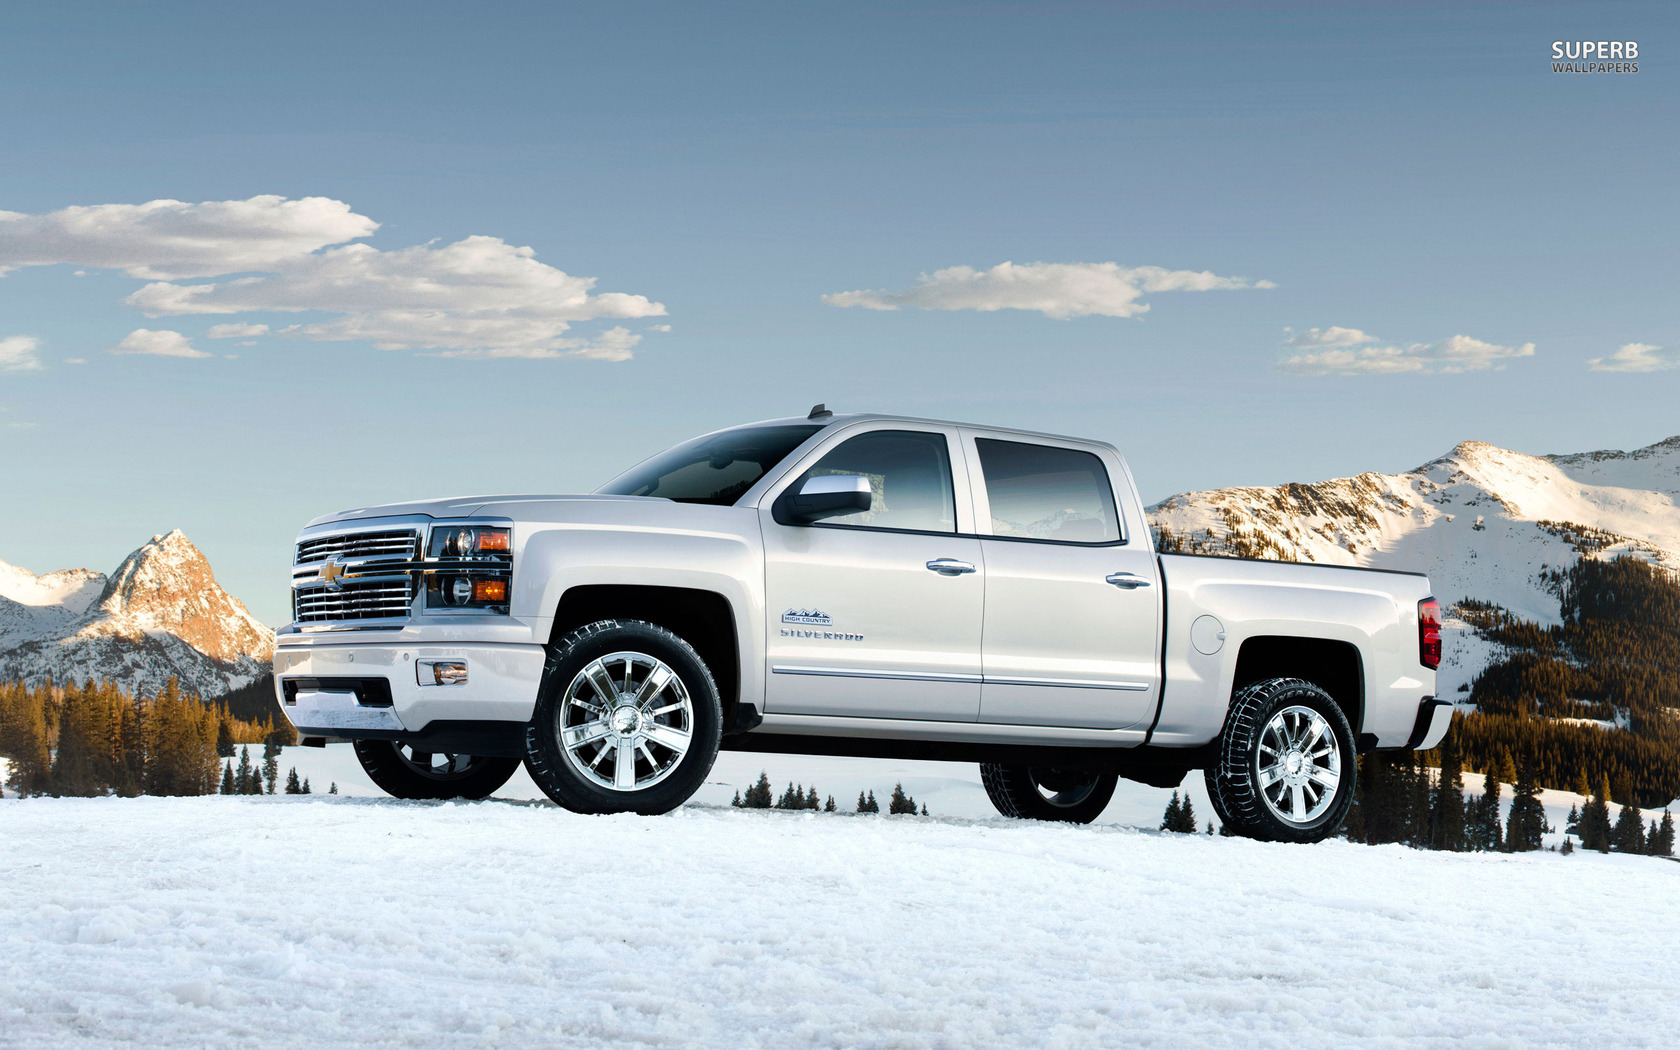 2014 Chevrolet Silverado wallpaper 1680x1050